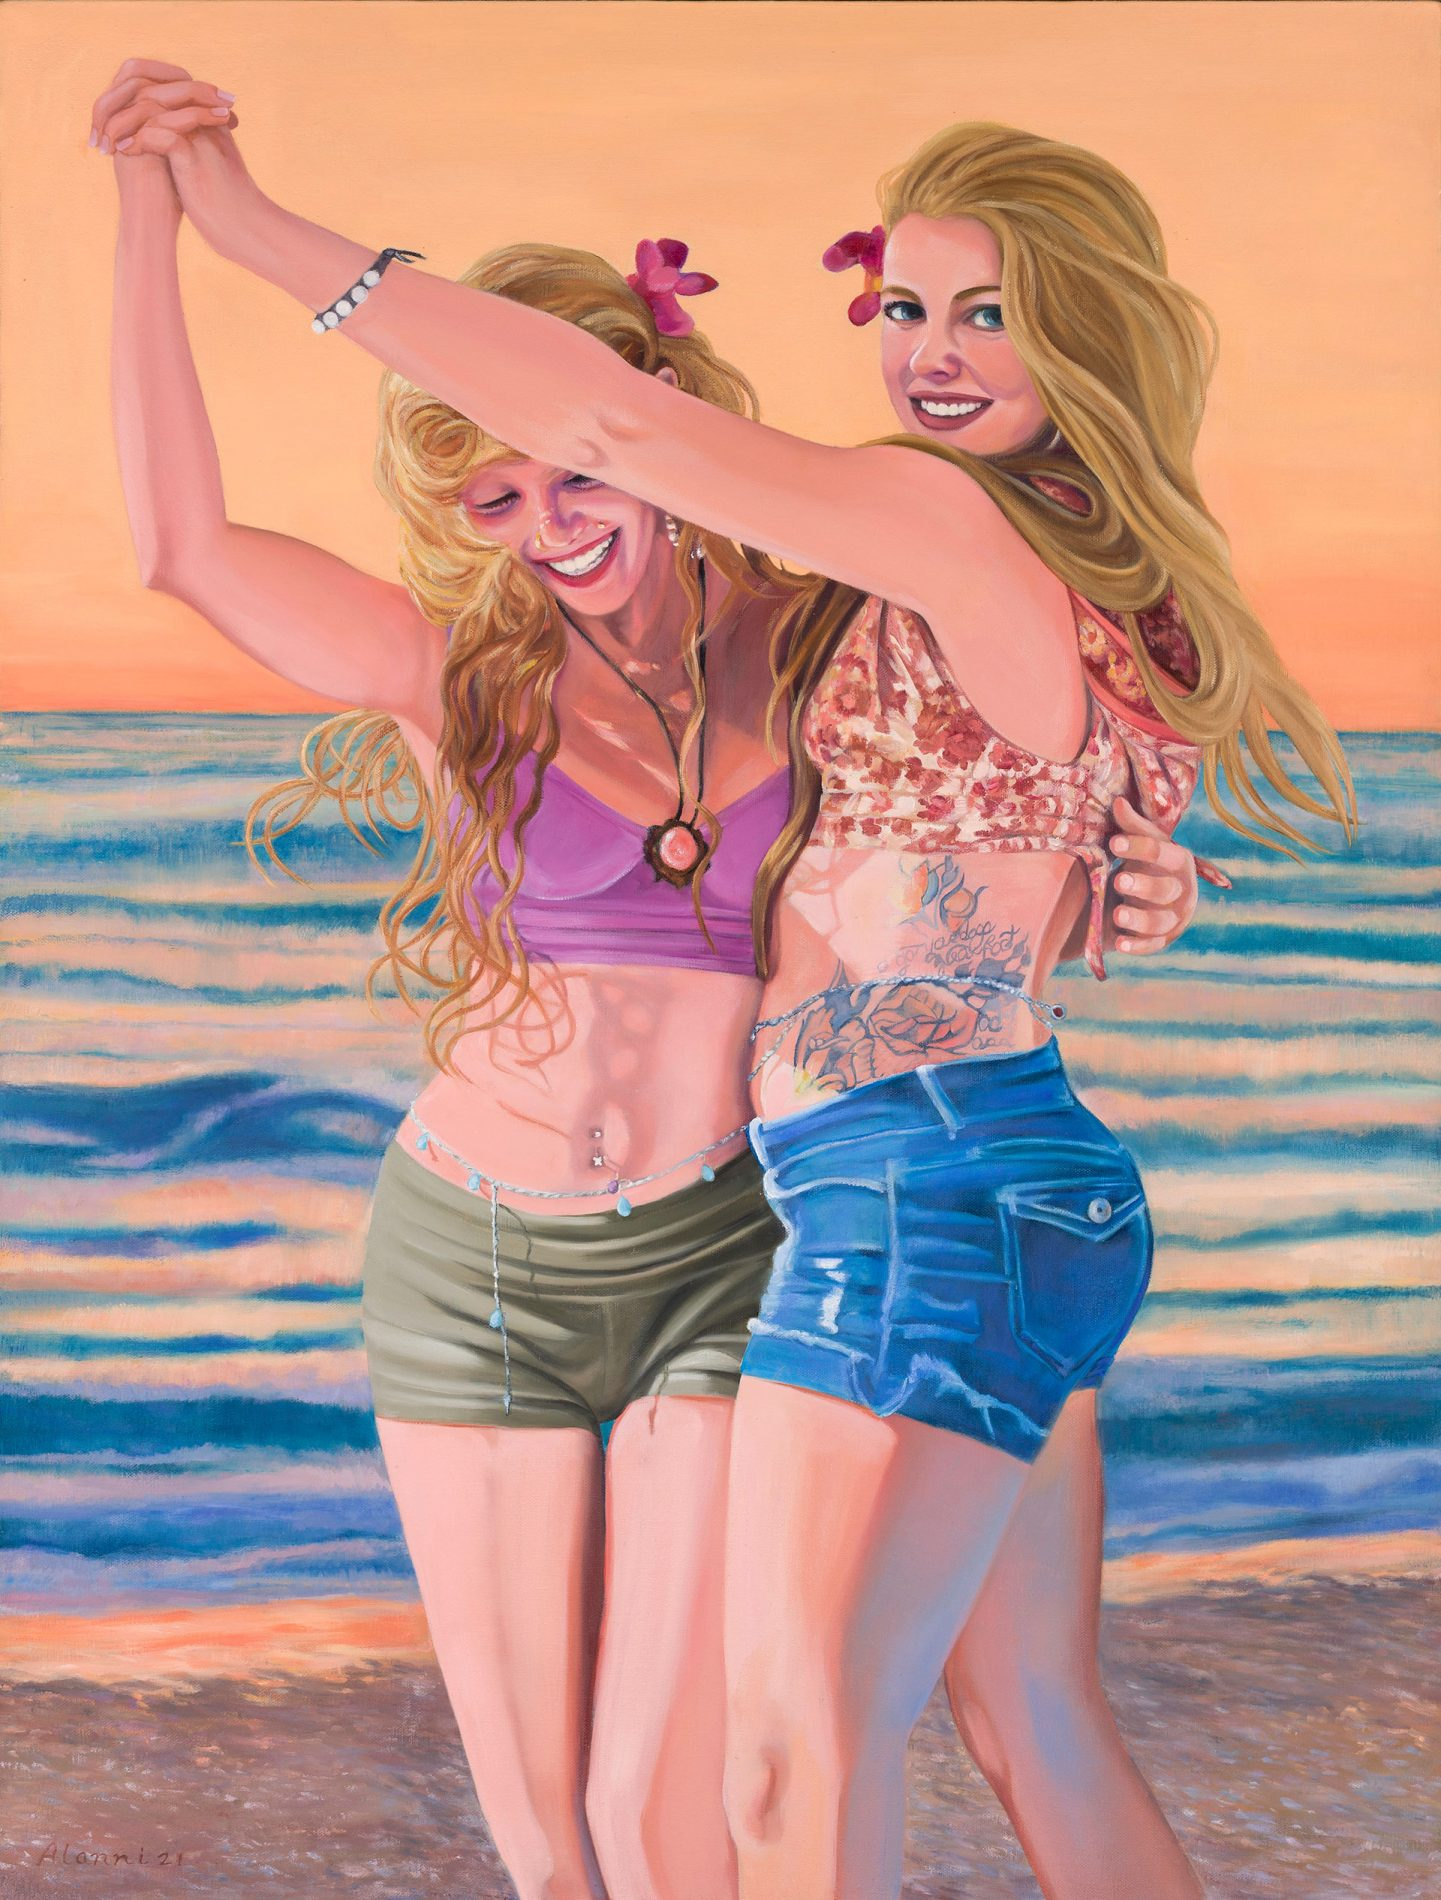 two young women dancing on the beach